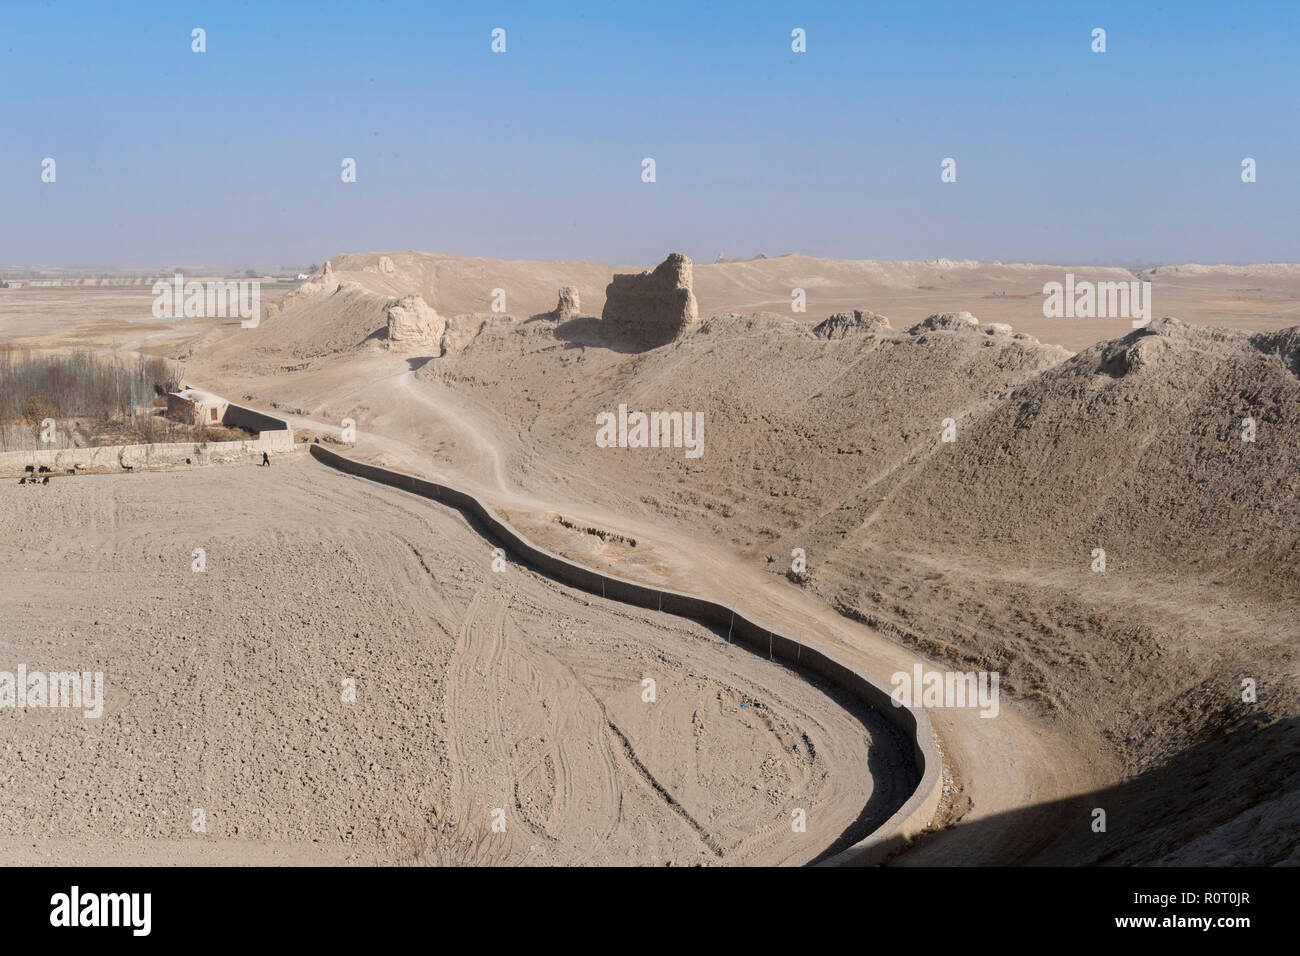 Ruins Of Historical Old Balkh City Walls And Fortifications In The Middle Of The Desert, Northern Afghanistan - Stock Image